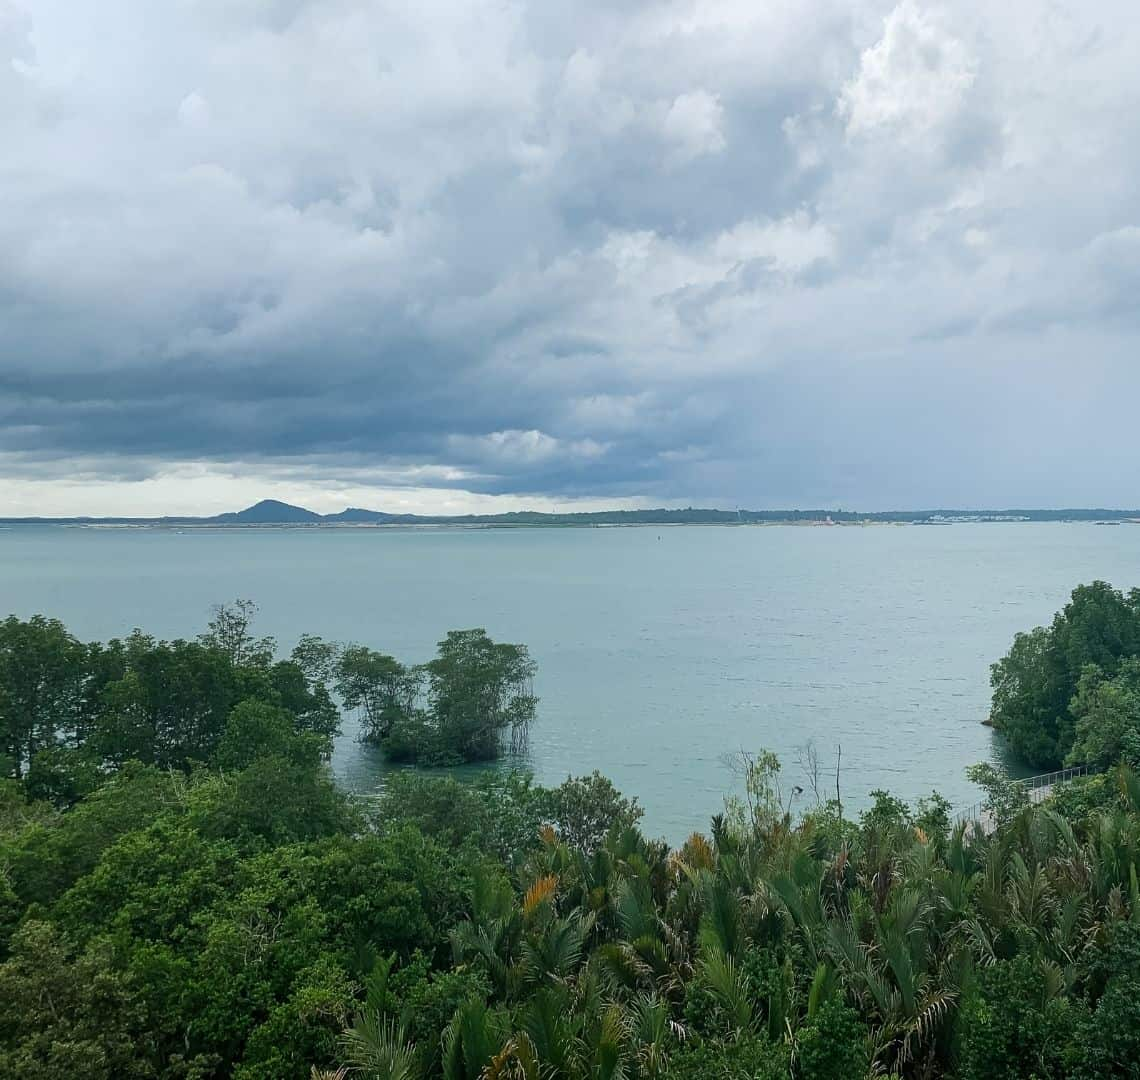 View from Jejawi Tower - the sky is dark with storms, moulds. On the horizon you can see the main island of Singapore but the land mass is quite dark. In front of it the sea is a blueish grey. In the foreground is a canopy of trees.